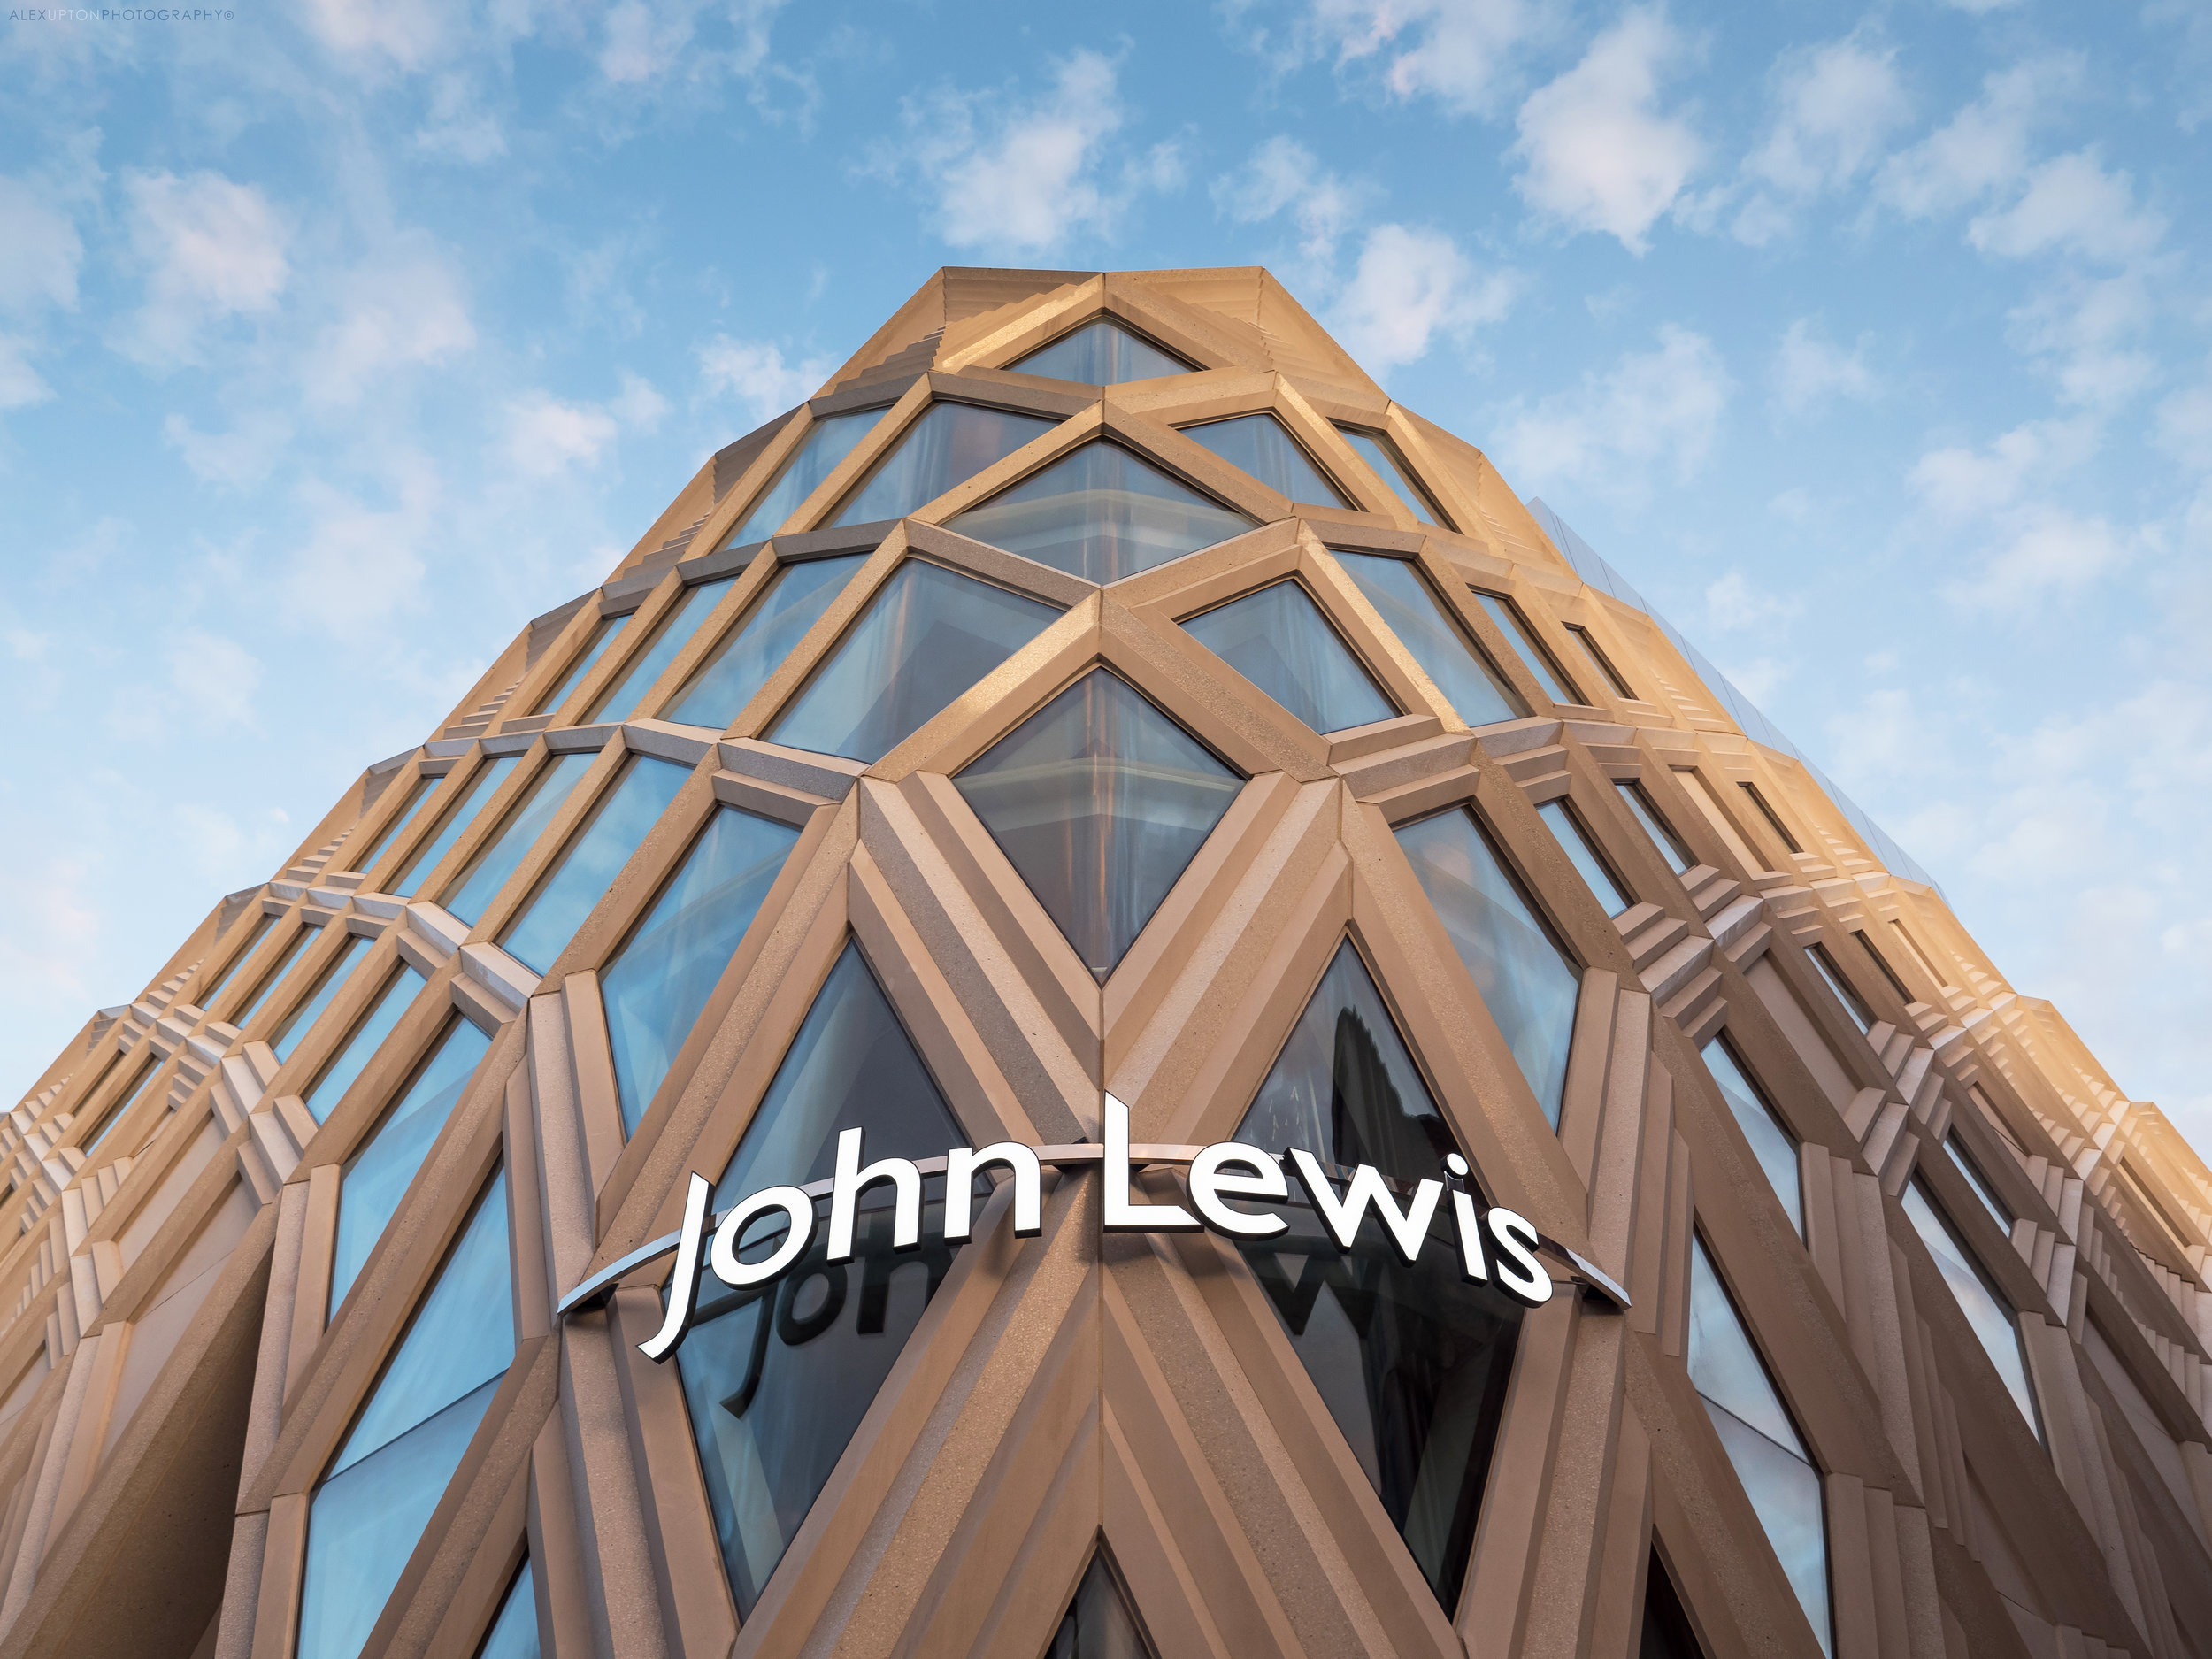 Victoria Gate John Lewis Department Store. Photography: Copyright © Alex Upton